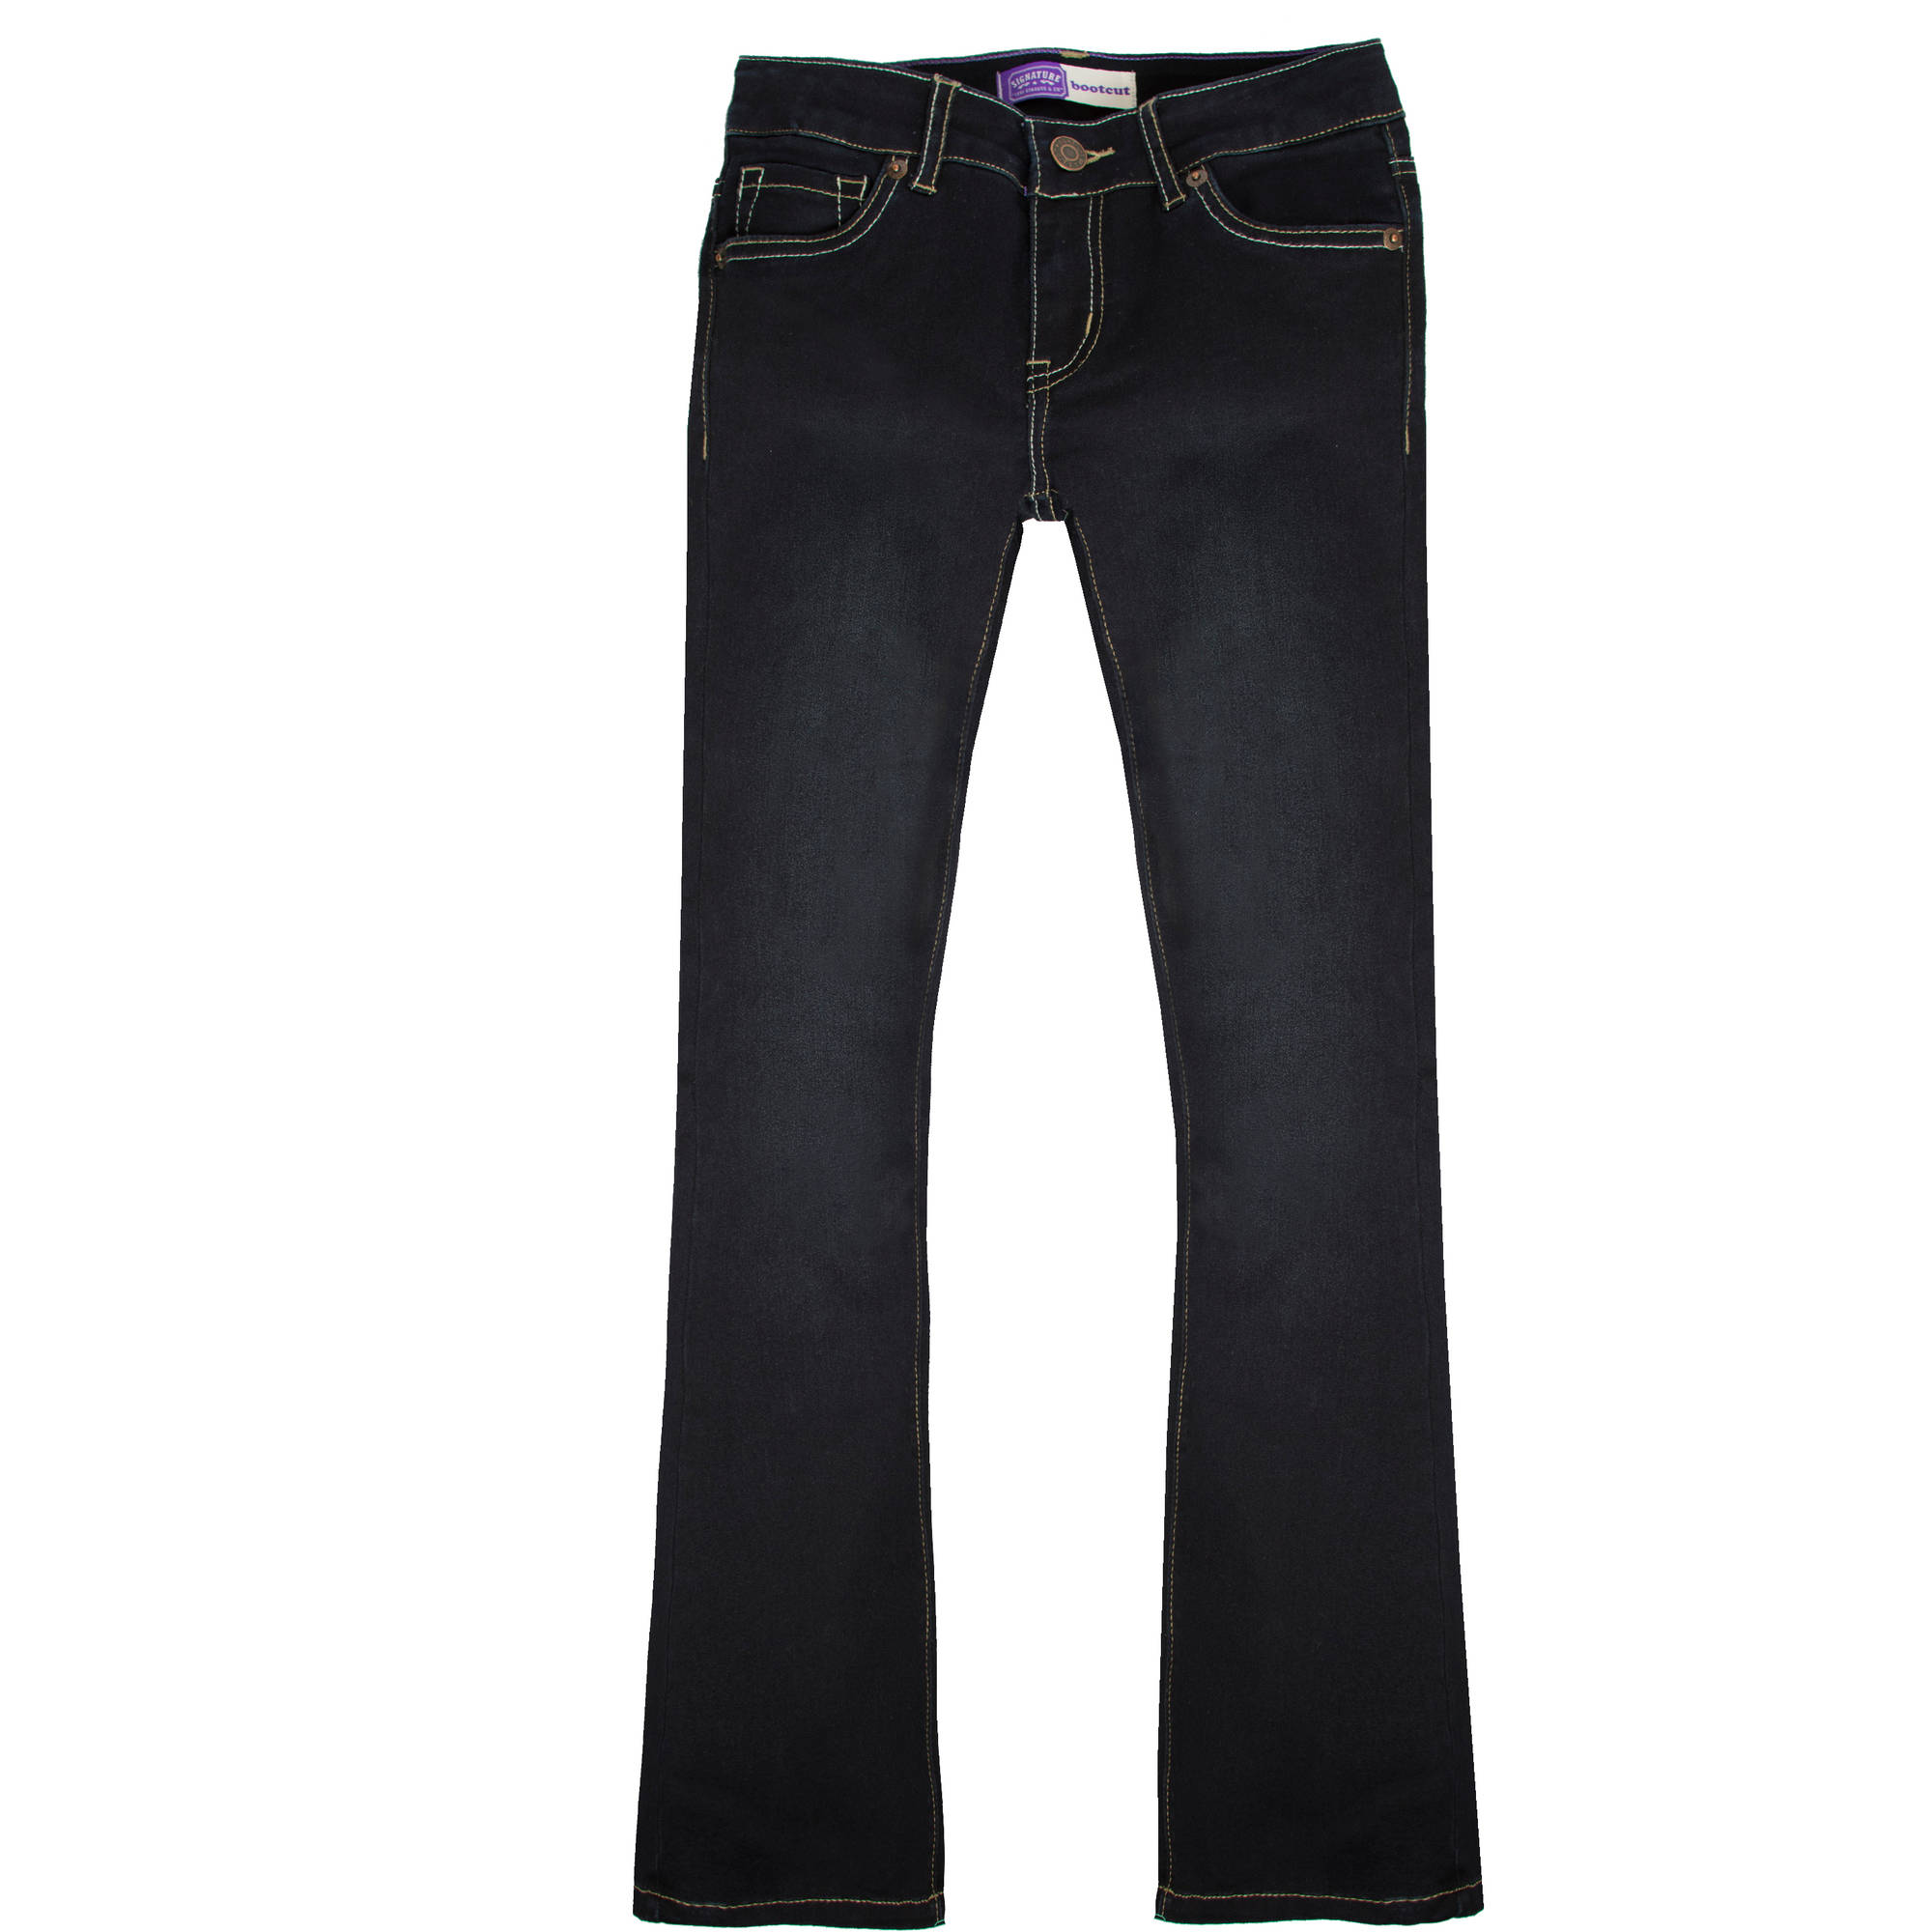 Levi's Signature Girls' 5 Pocket Bootcut Jeans - Walmart.com